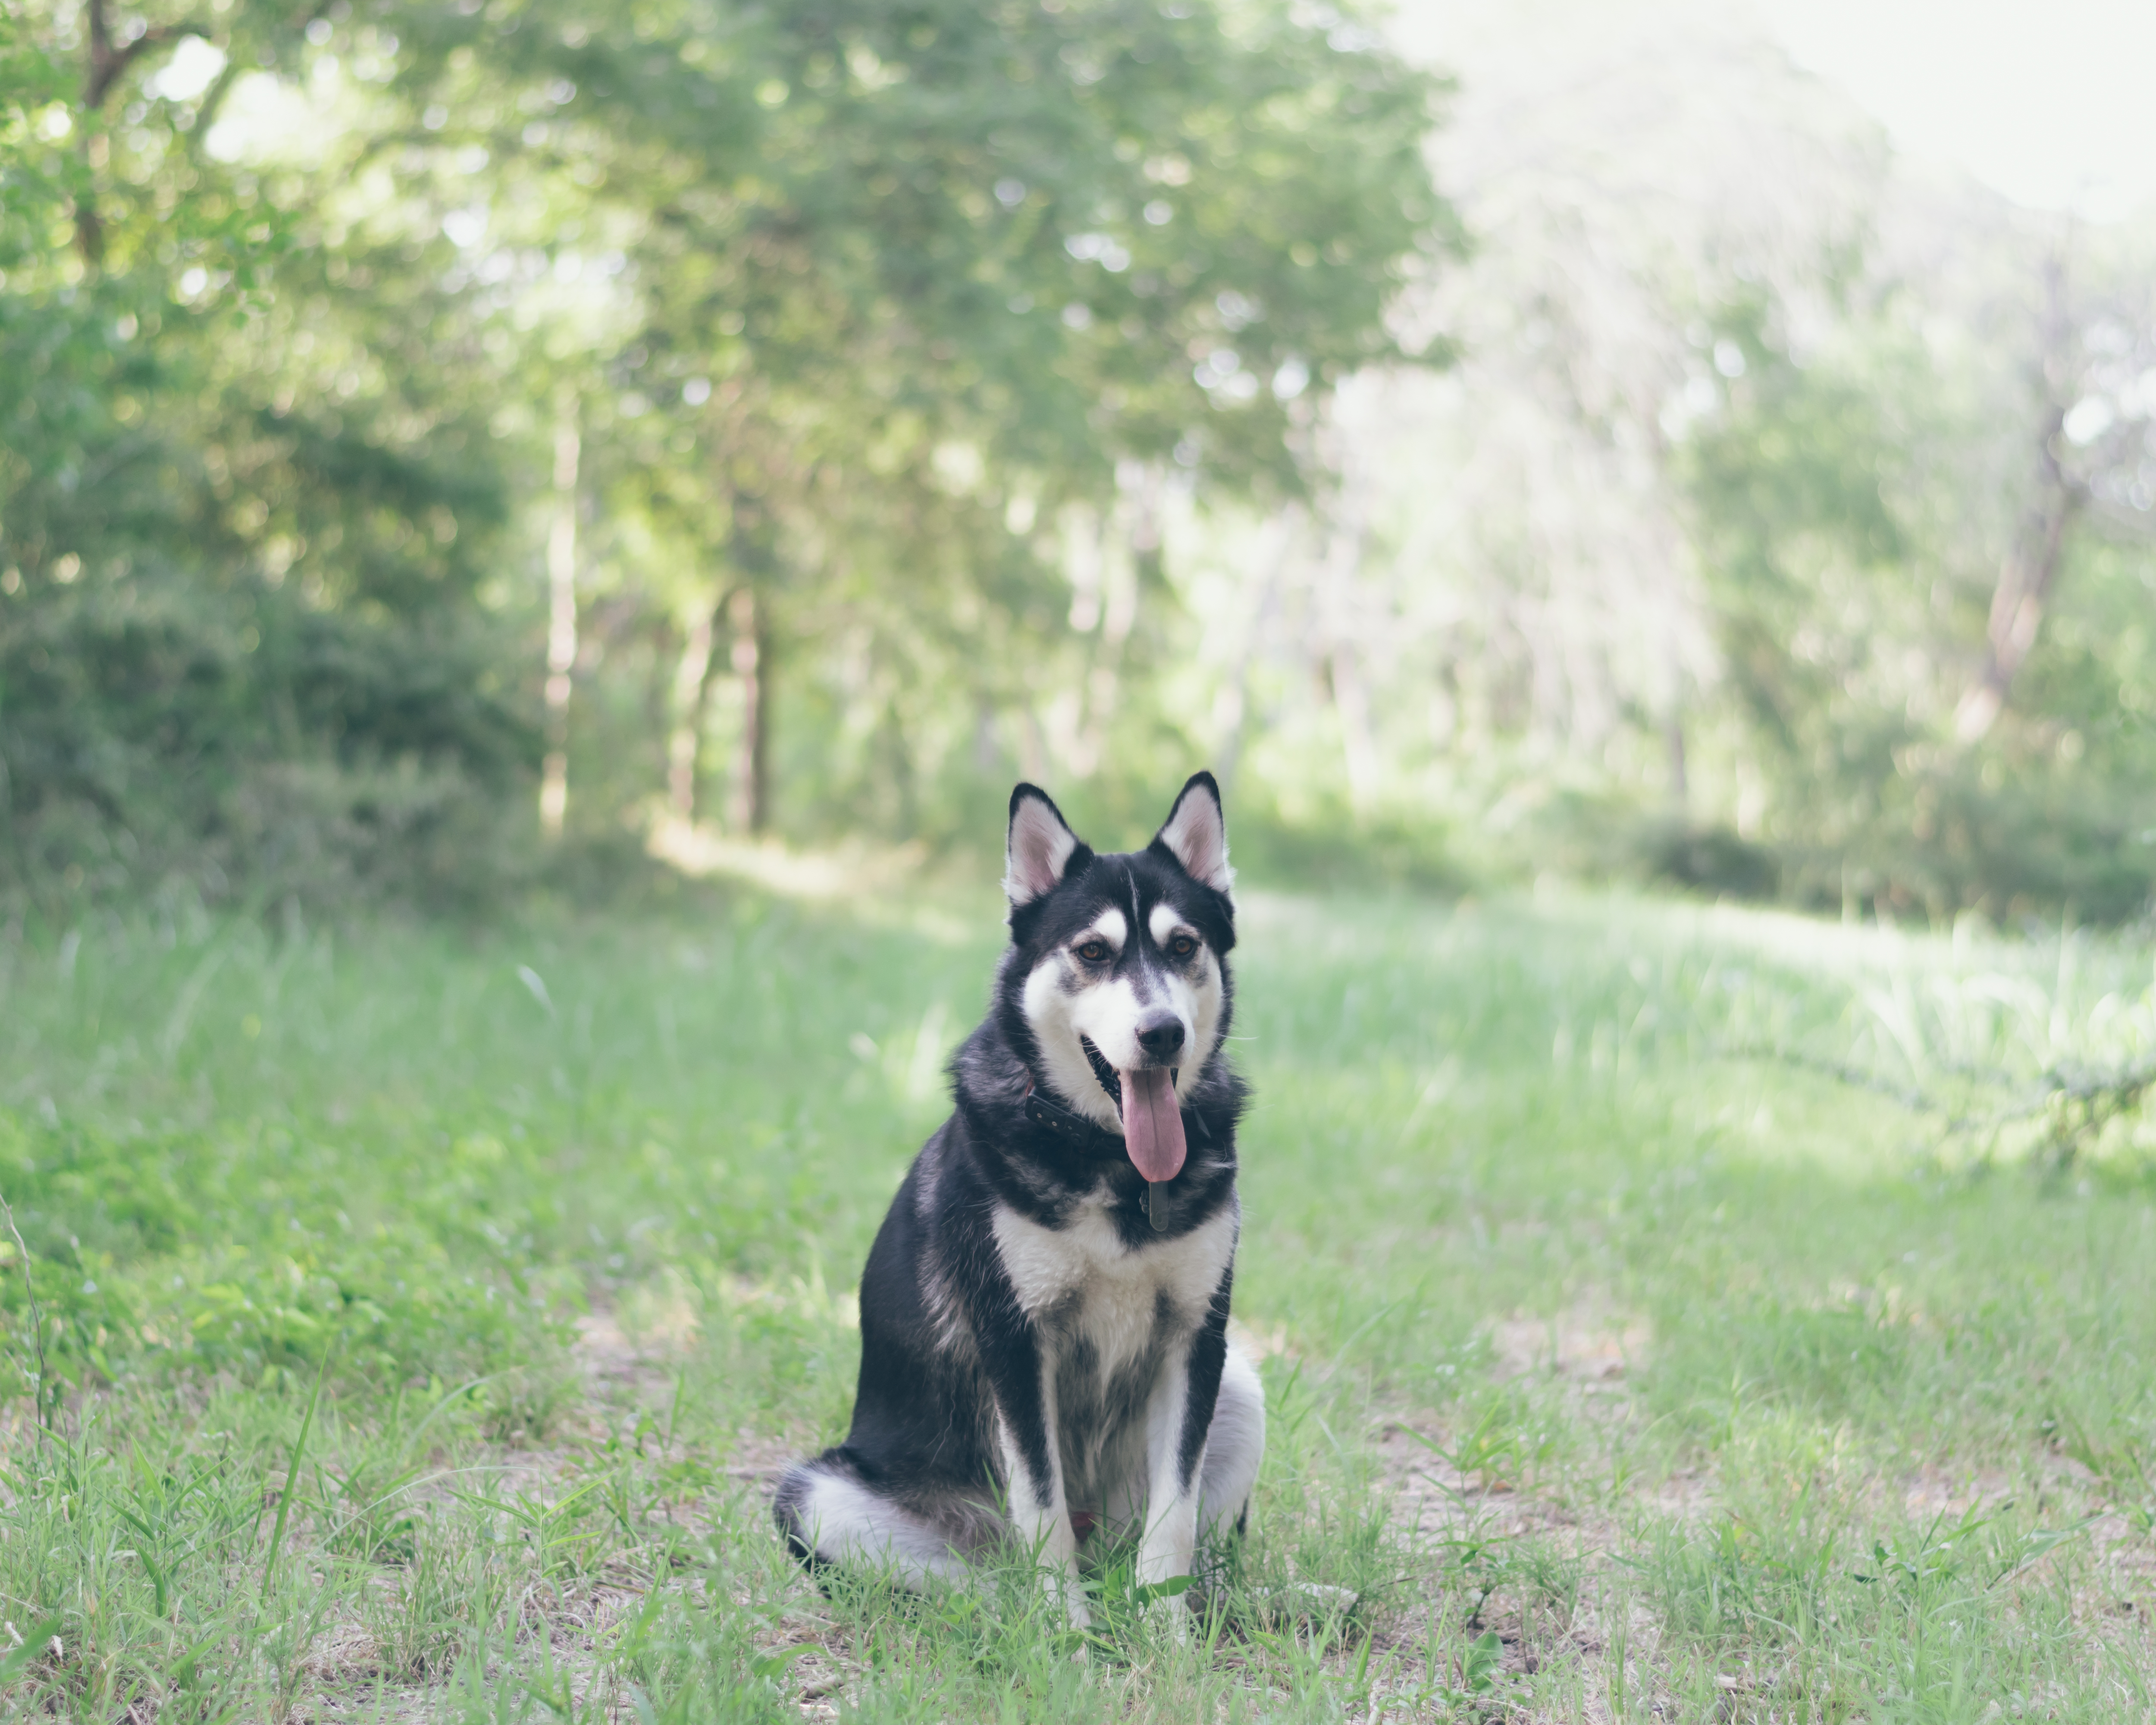 156327 download wallpaper Animals, Husky, Haska, Dog, Grass, Is Sitting, Sits screensavers and pictures for free